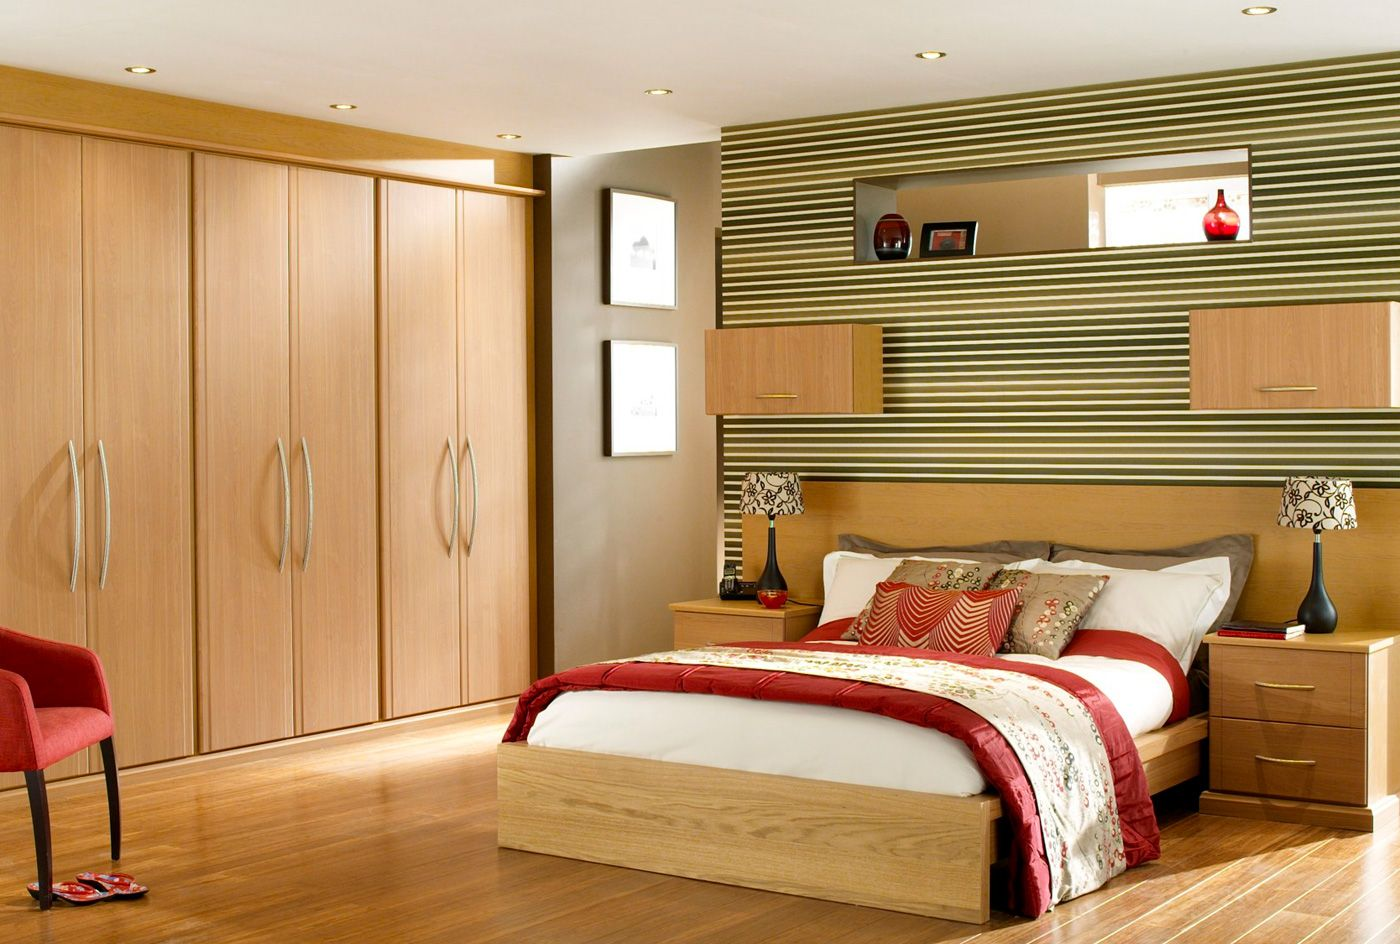 bedroom description doors wardrobe project cupboard bespoke wardobe complete cupboards bedrooms frame fitted tall with